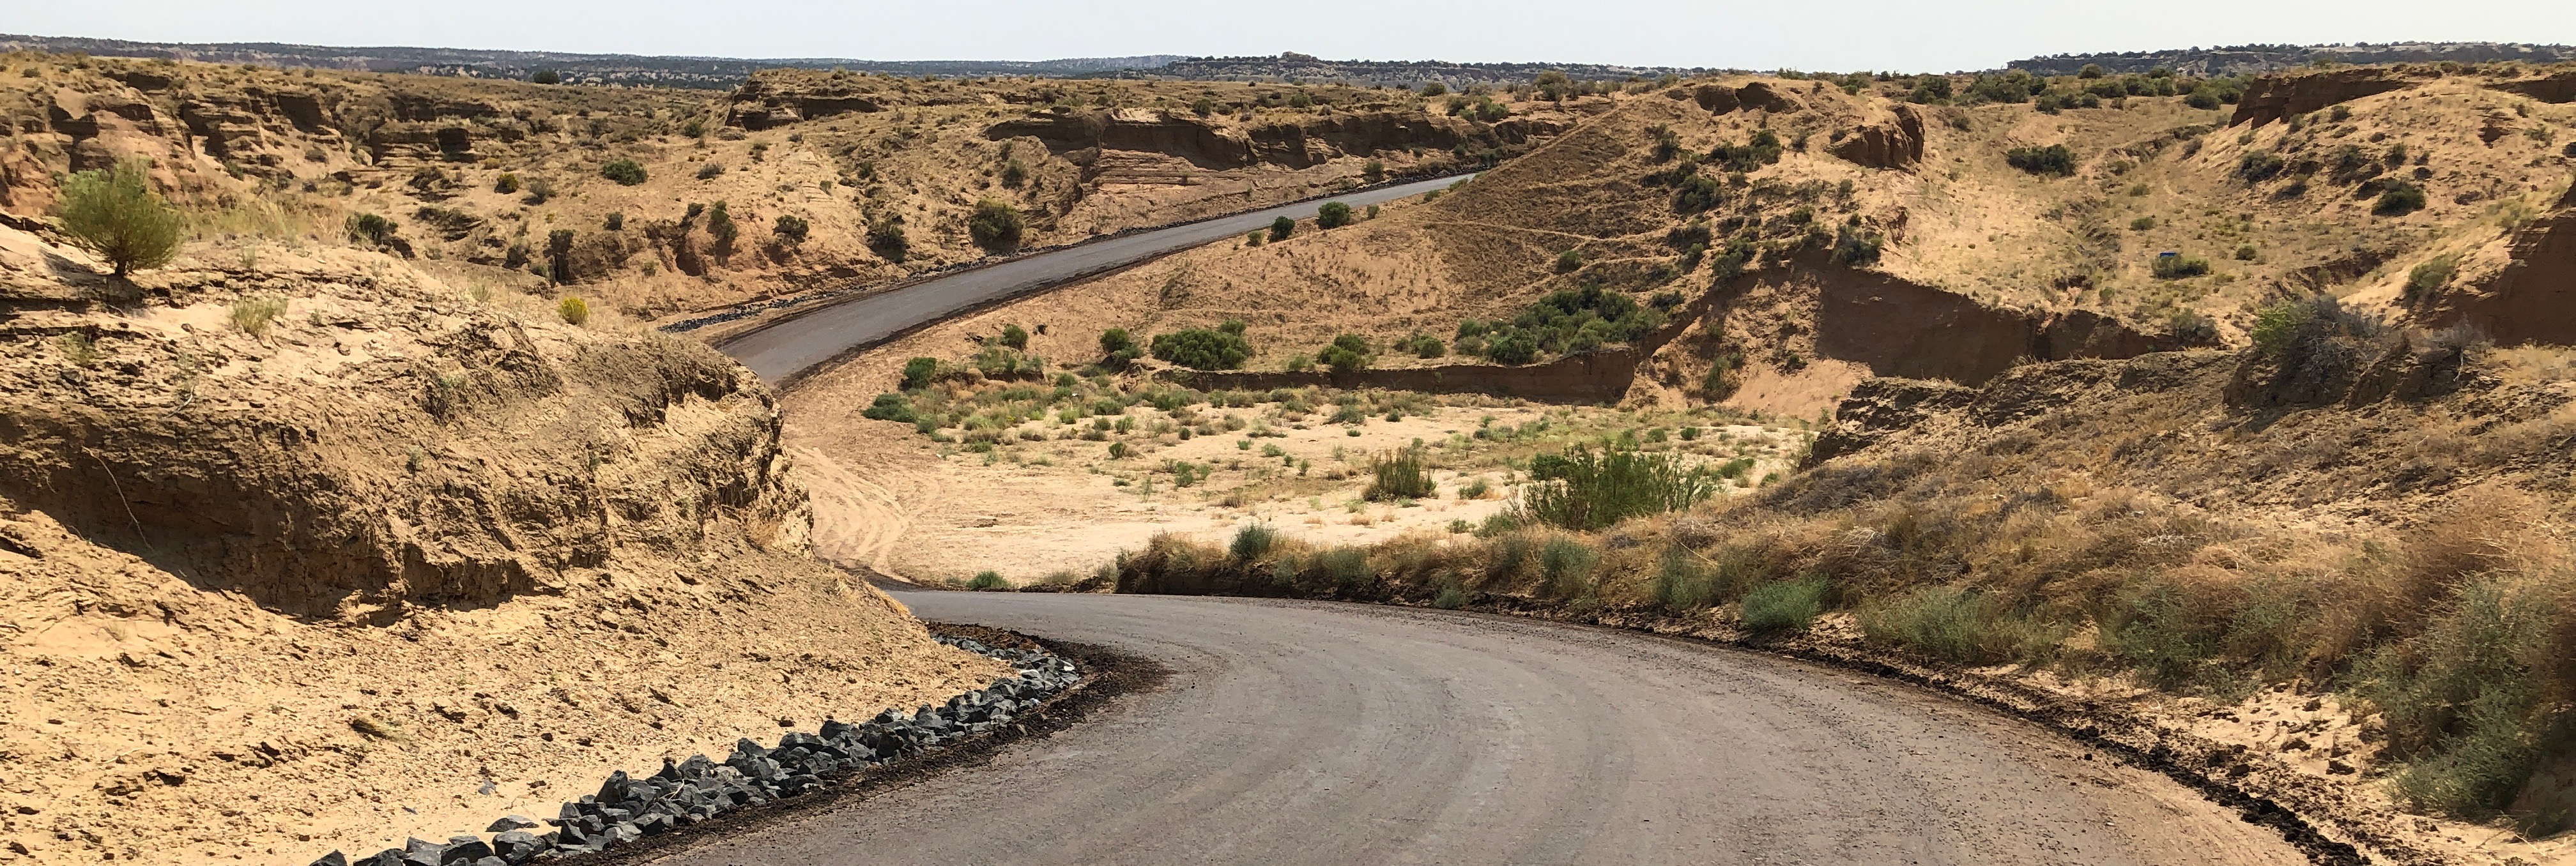 Road-stabilization-New-Mexico